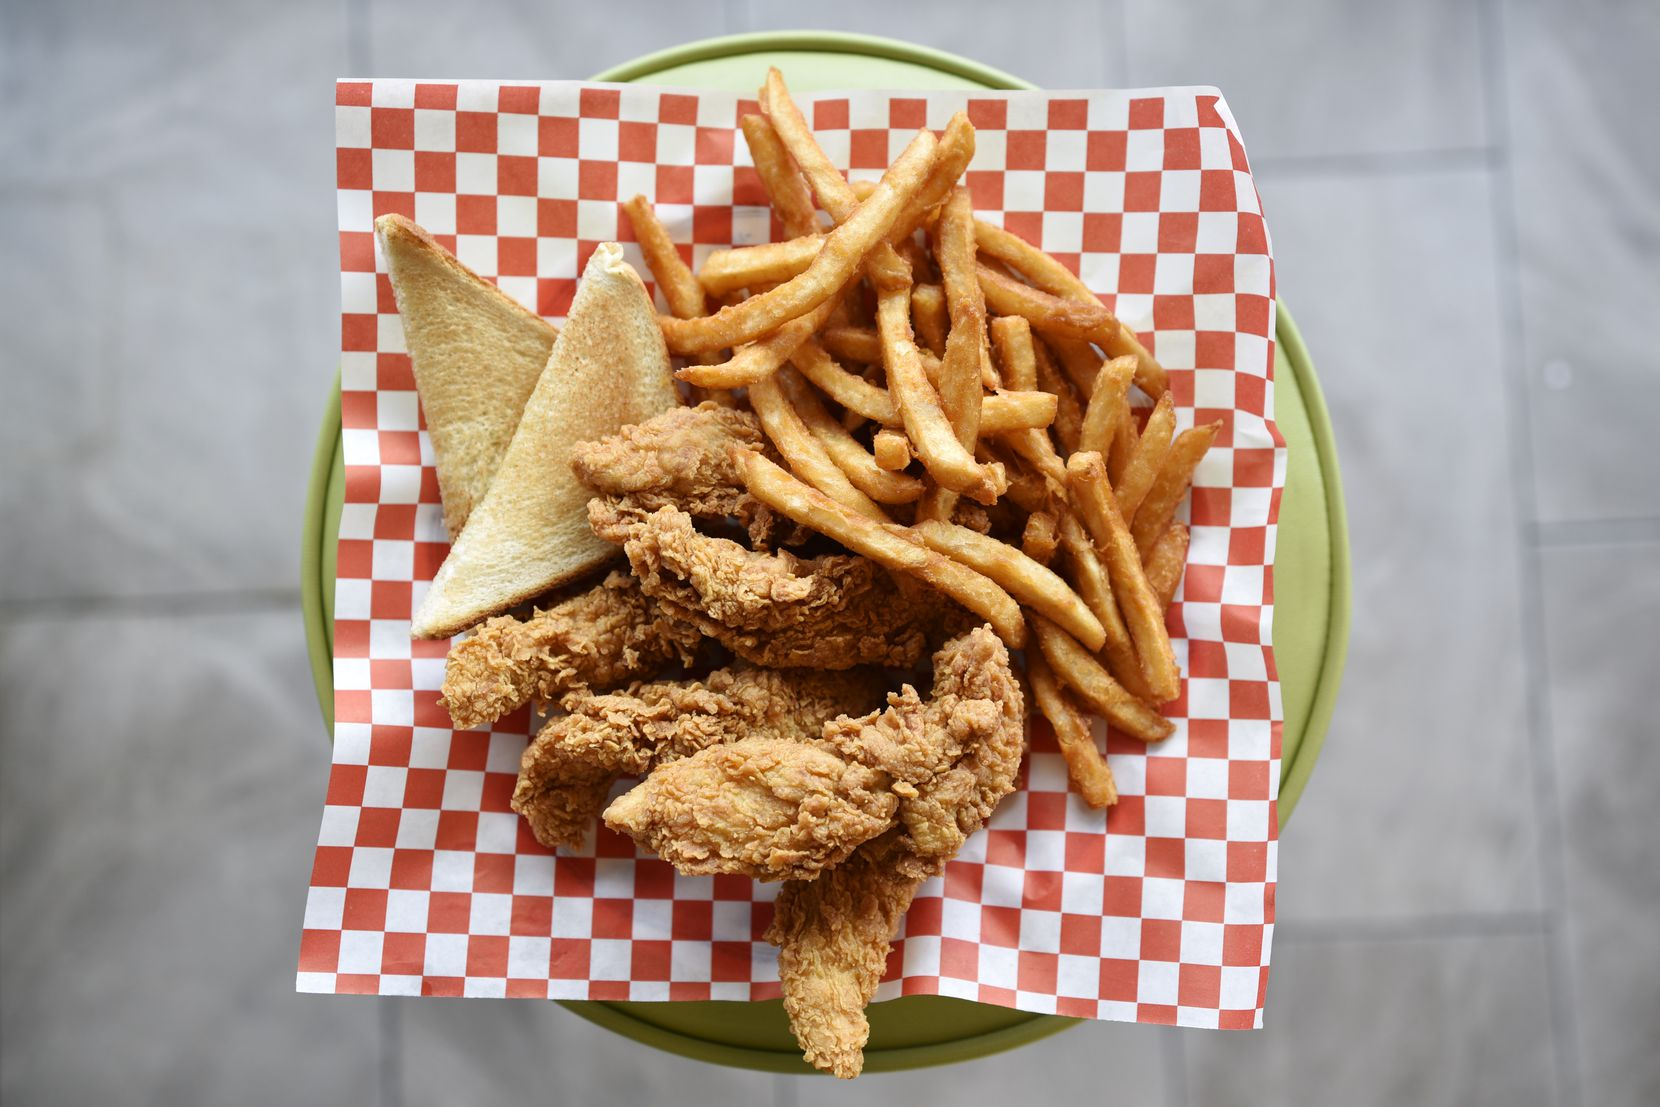 An order of chicken tenders, fries and toast from Mike's Chicken on Maple Avenue in Dallas